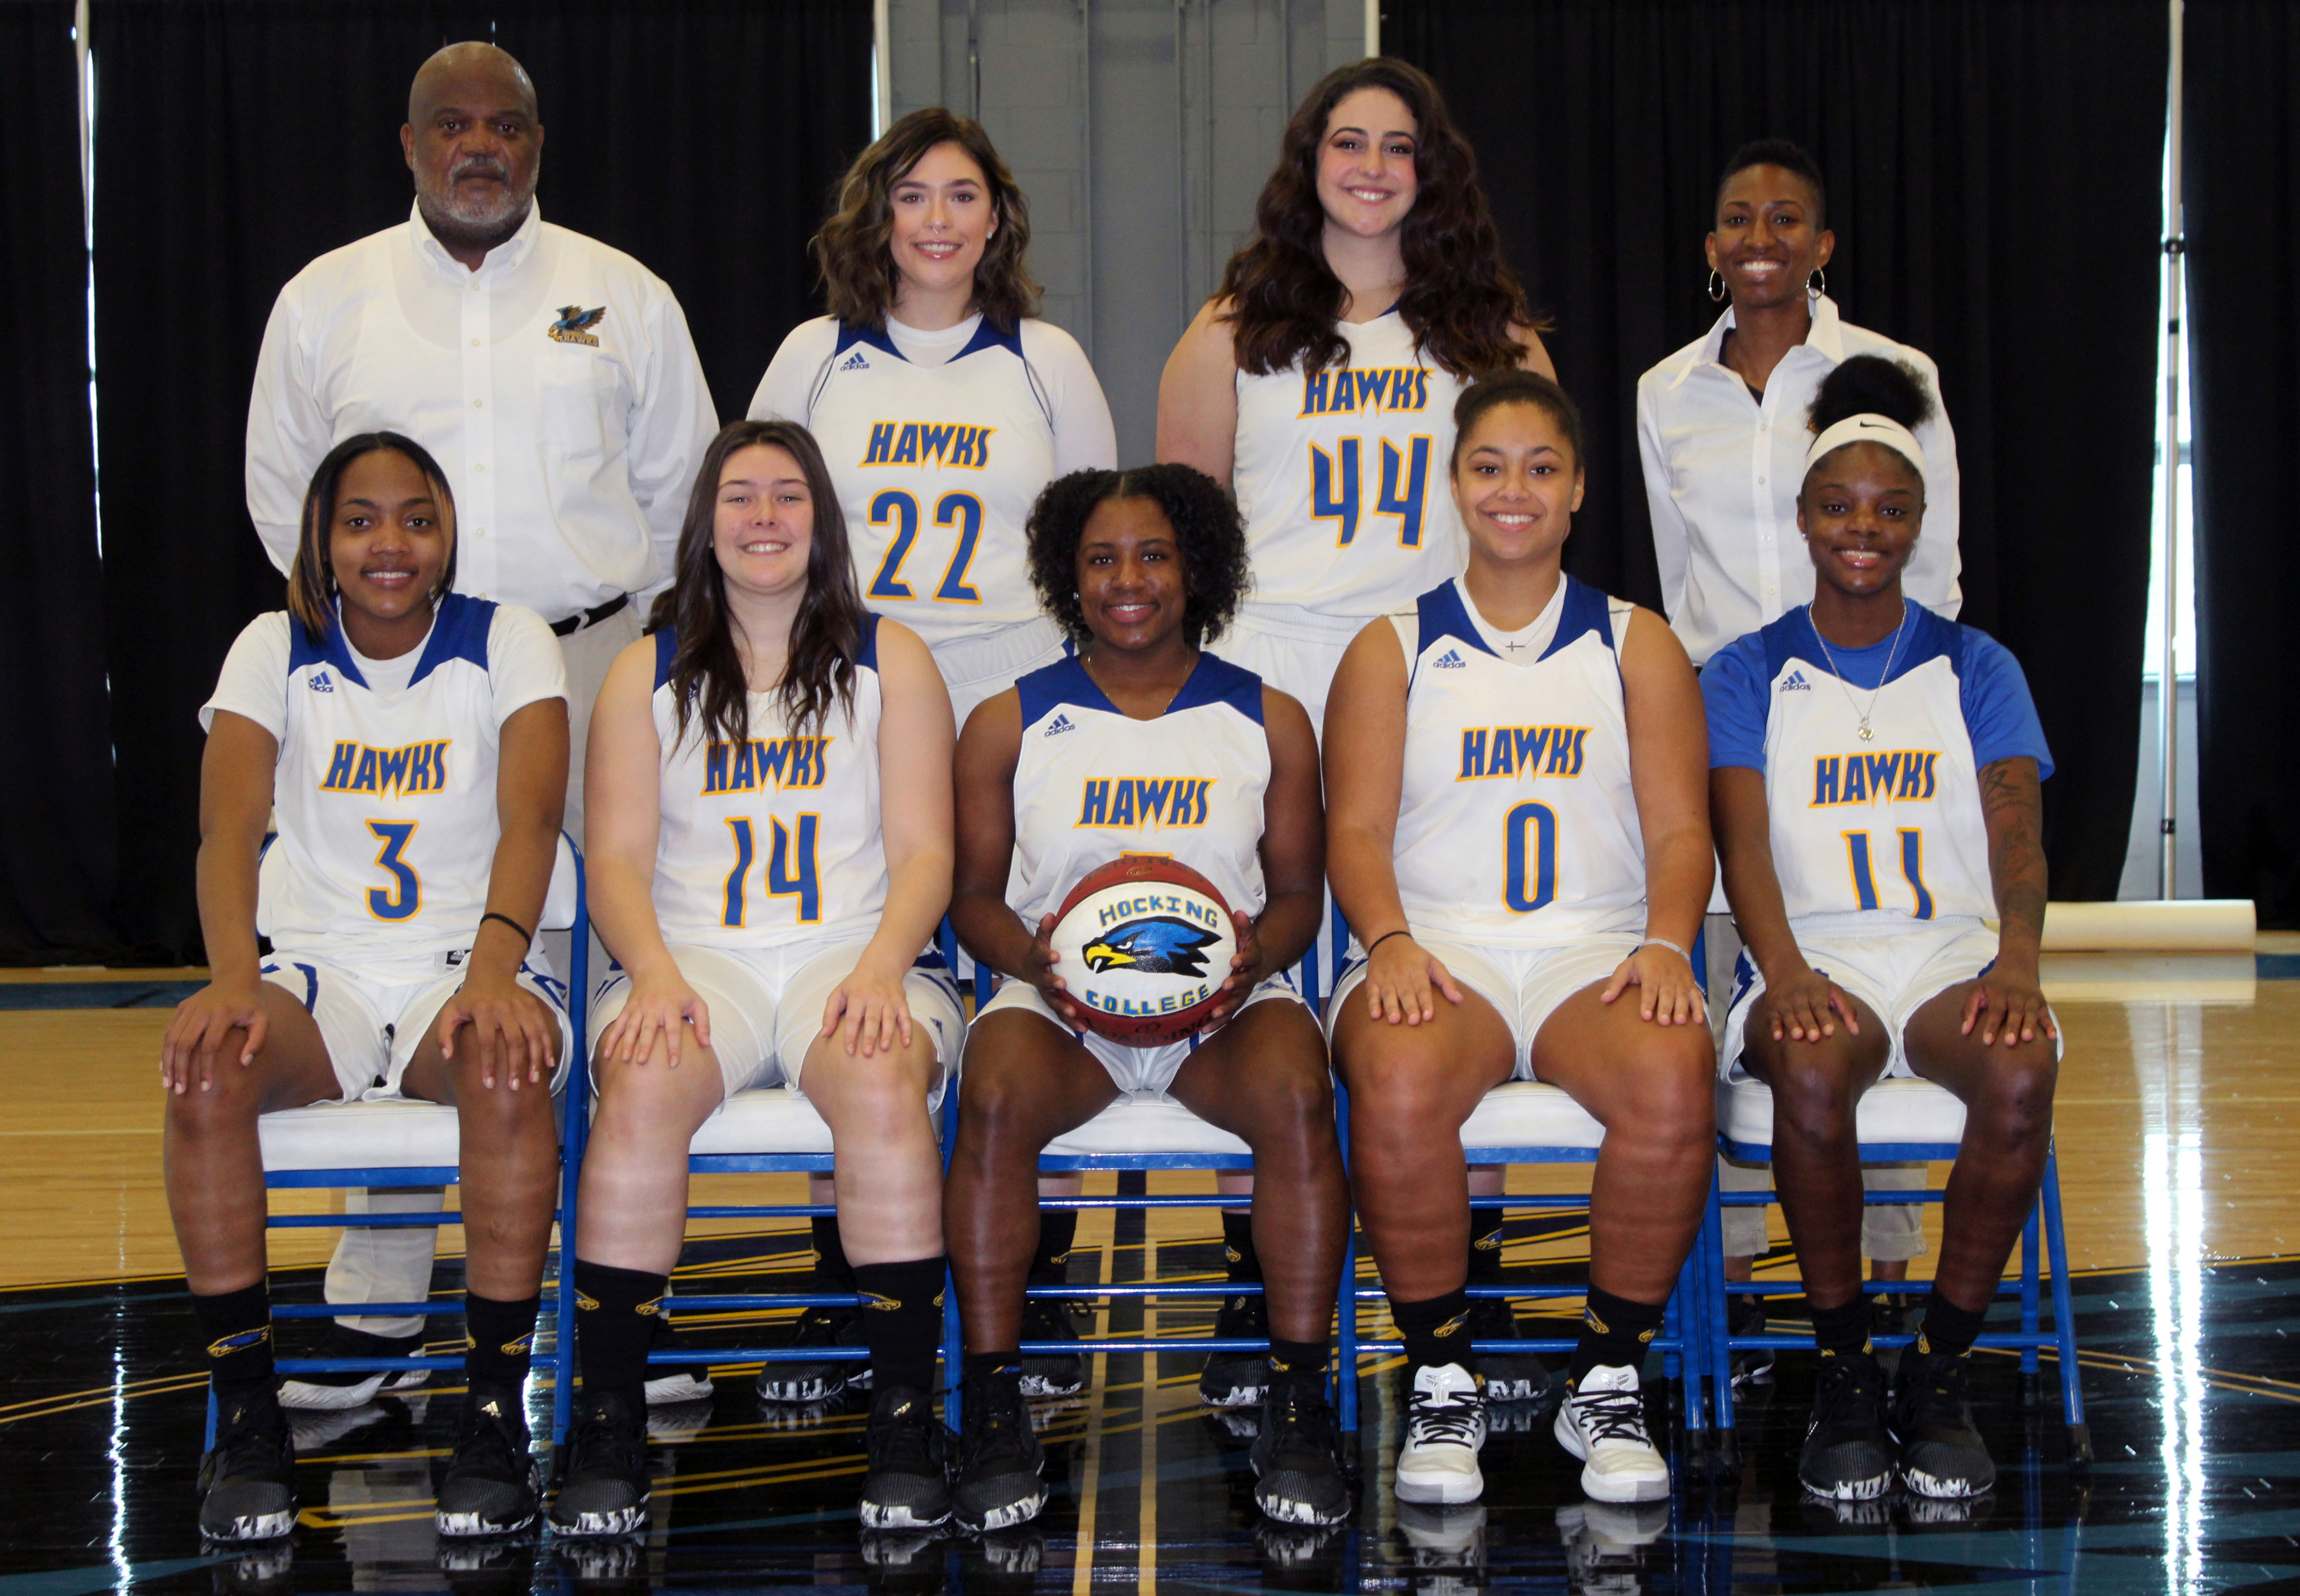 2019-2020 Hocking College Women's Baseketball team